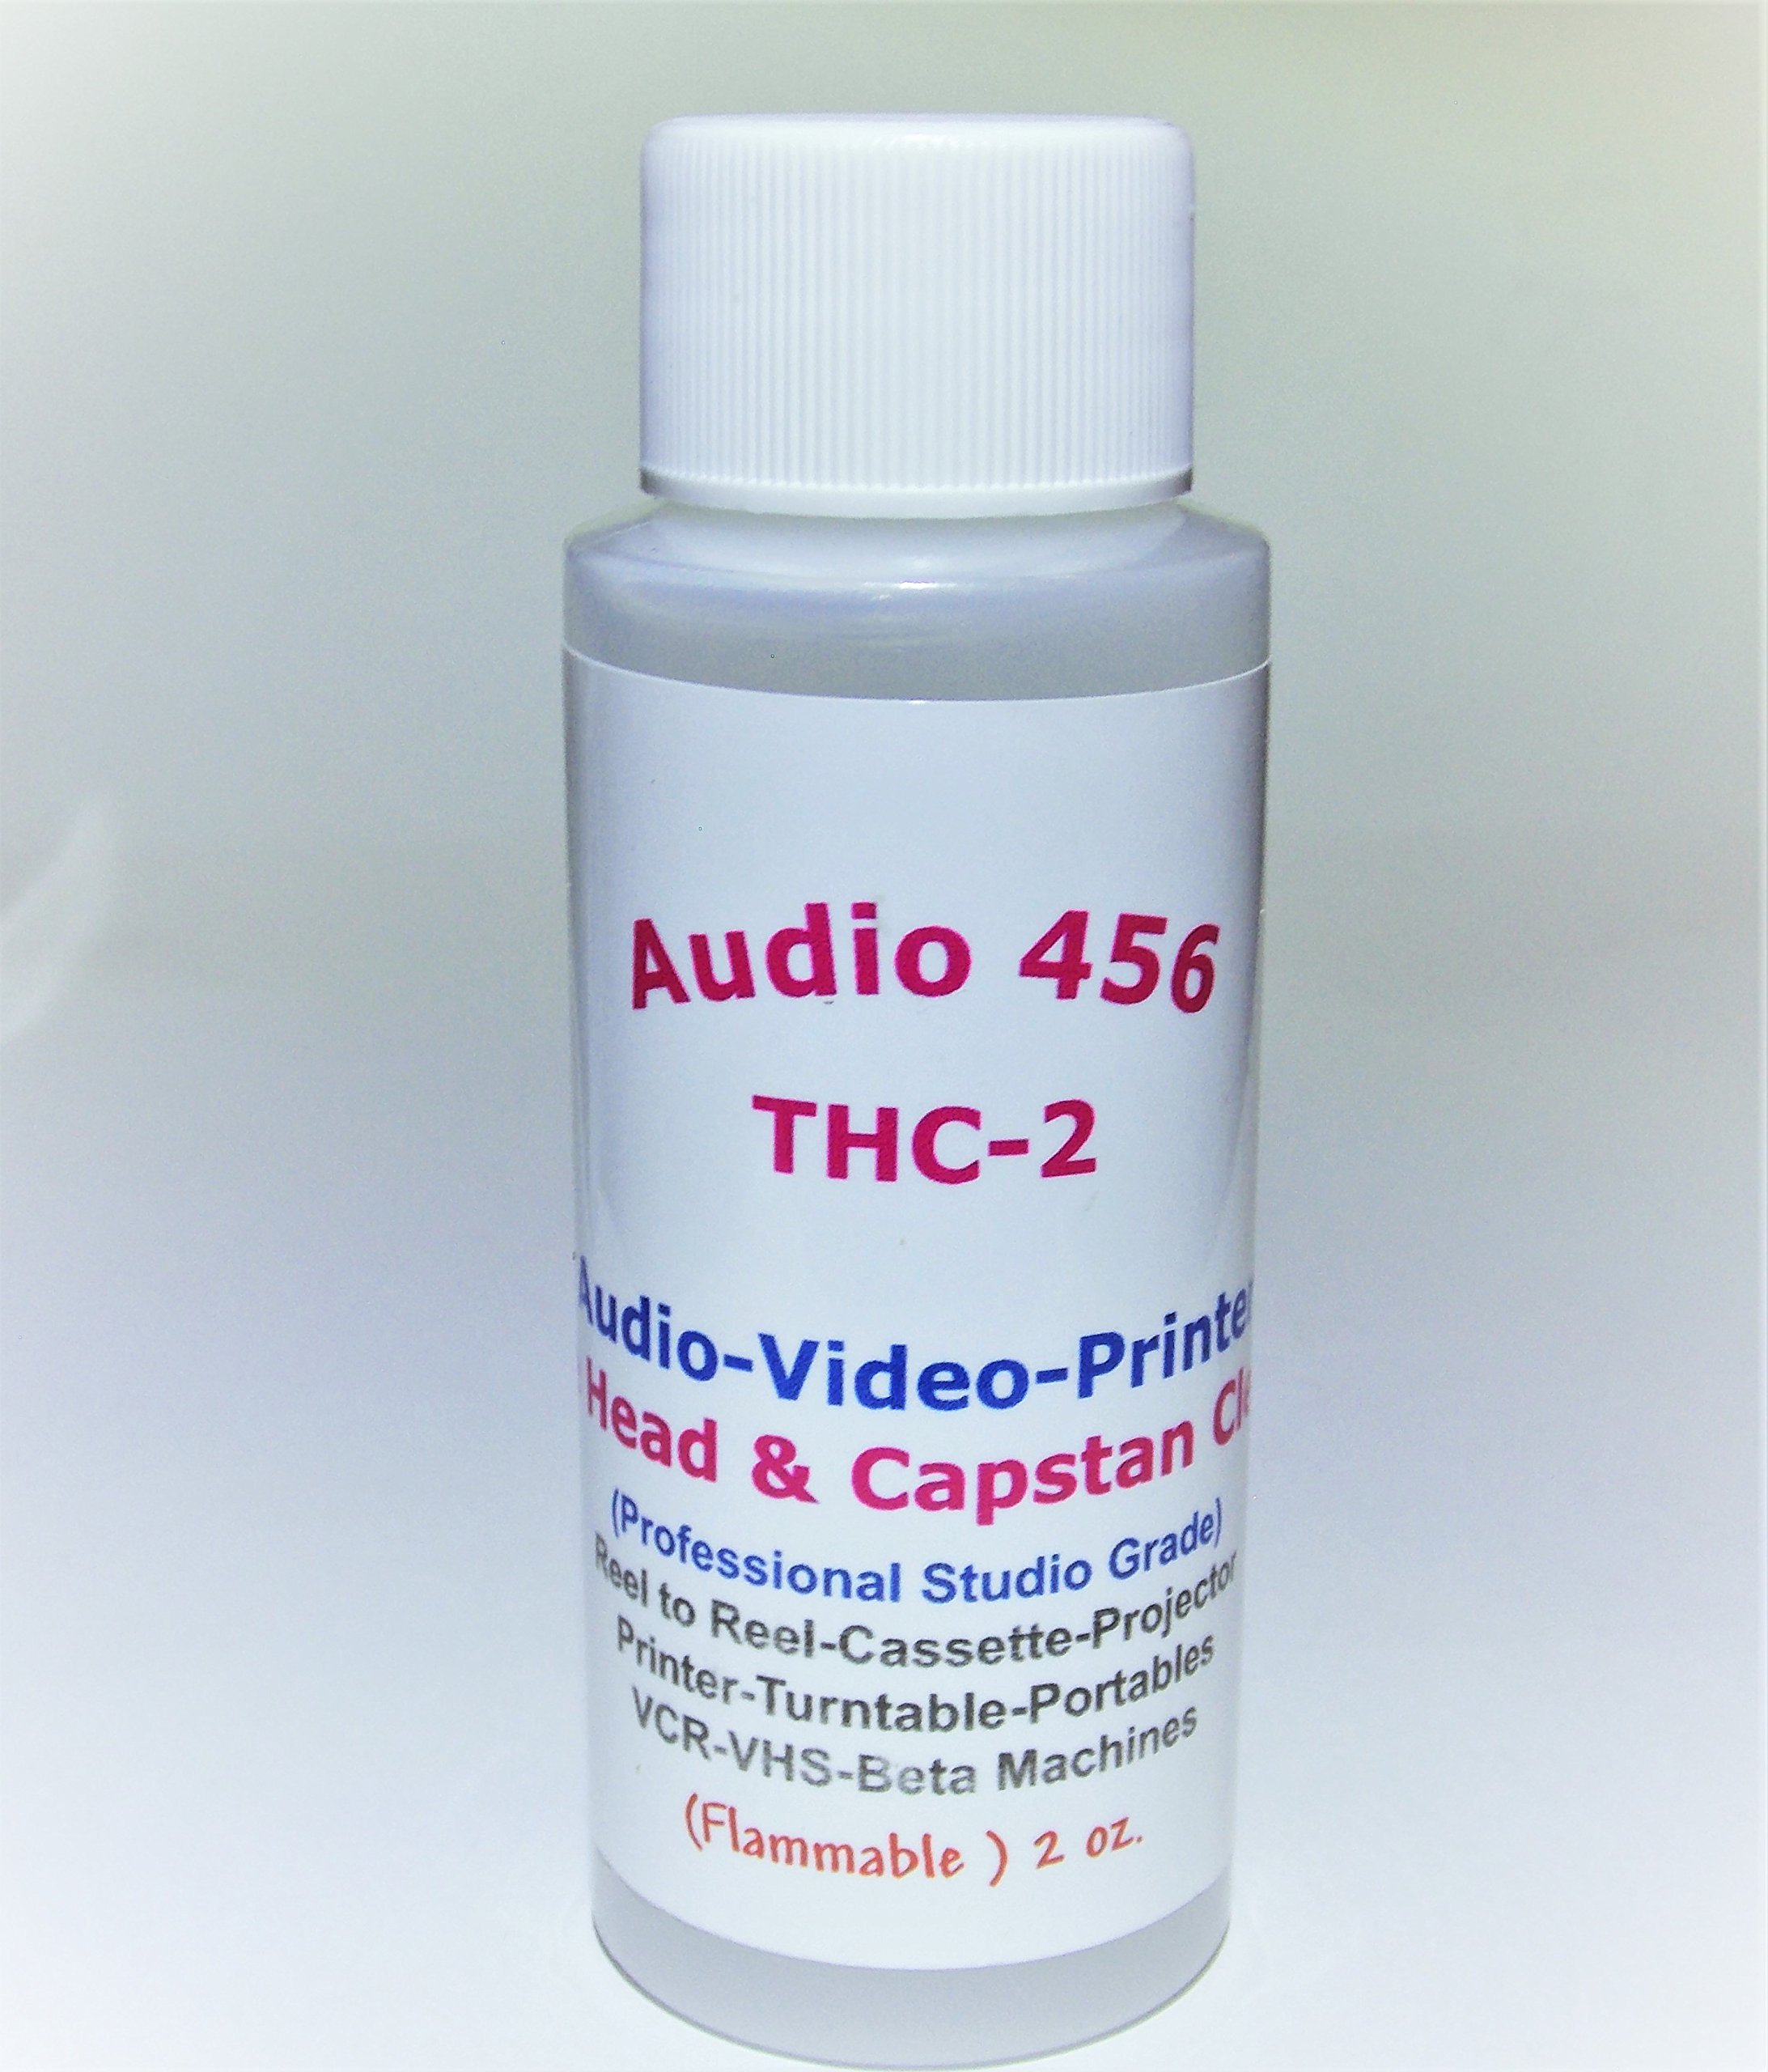 (1) Audio 456 (2 oz) THC-2 Professional Audio/Video Tape Head Capstan Cleaner for Reel to Reel + Cassette Decks +Tape Echo + Projectors + Portable & More.(formally SR-Audio)